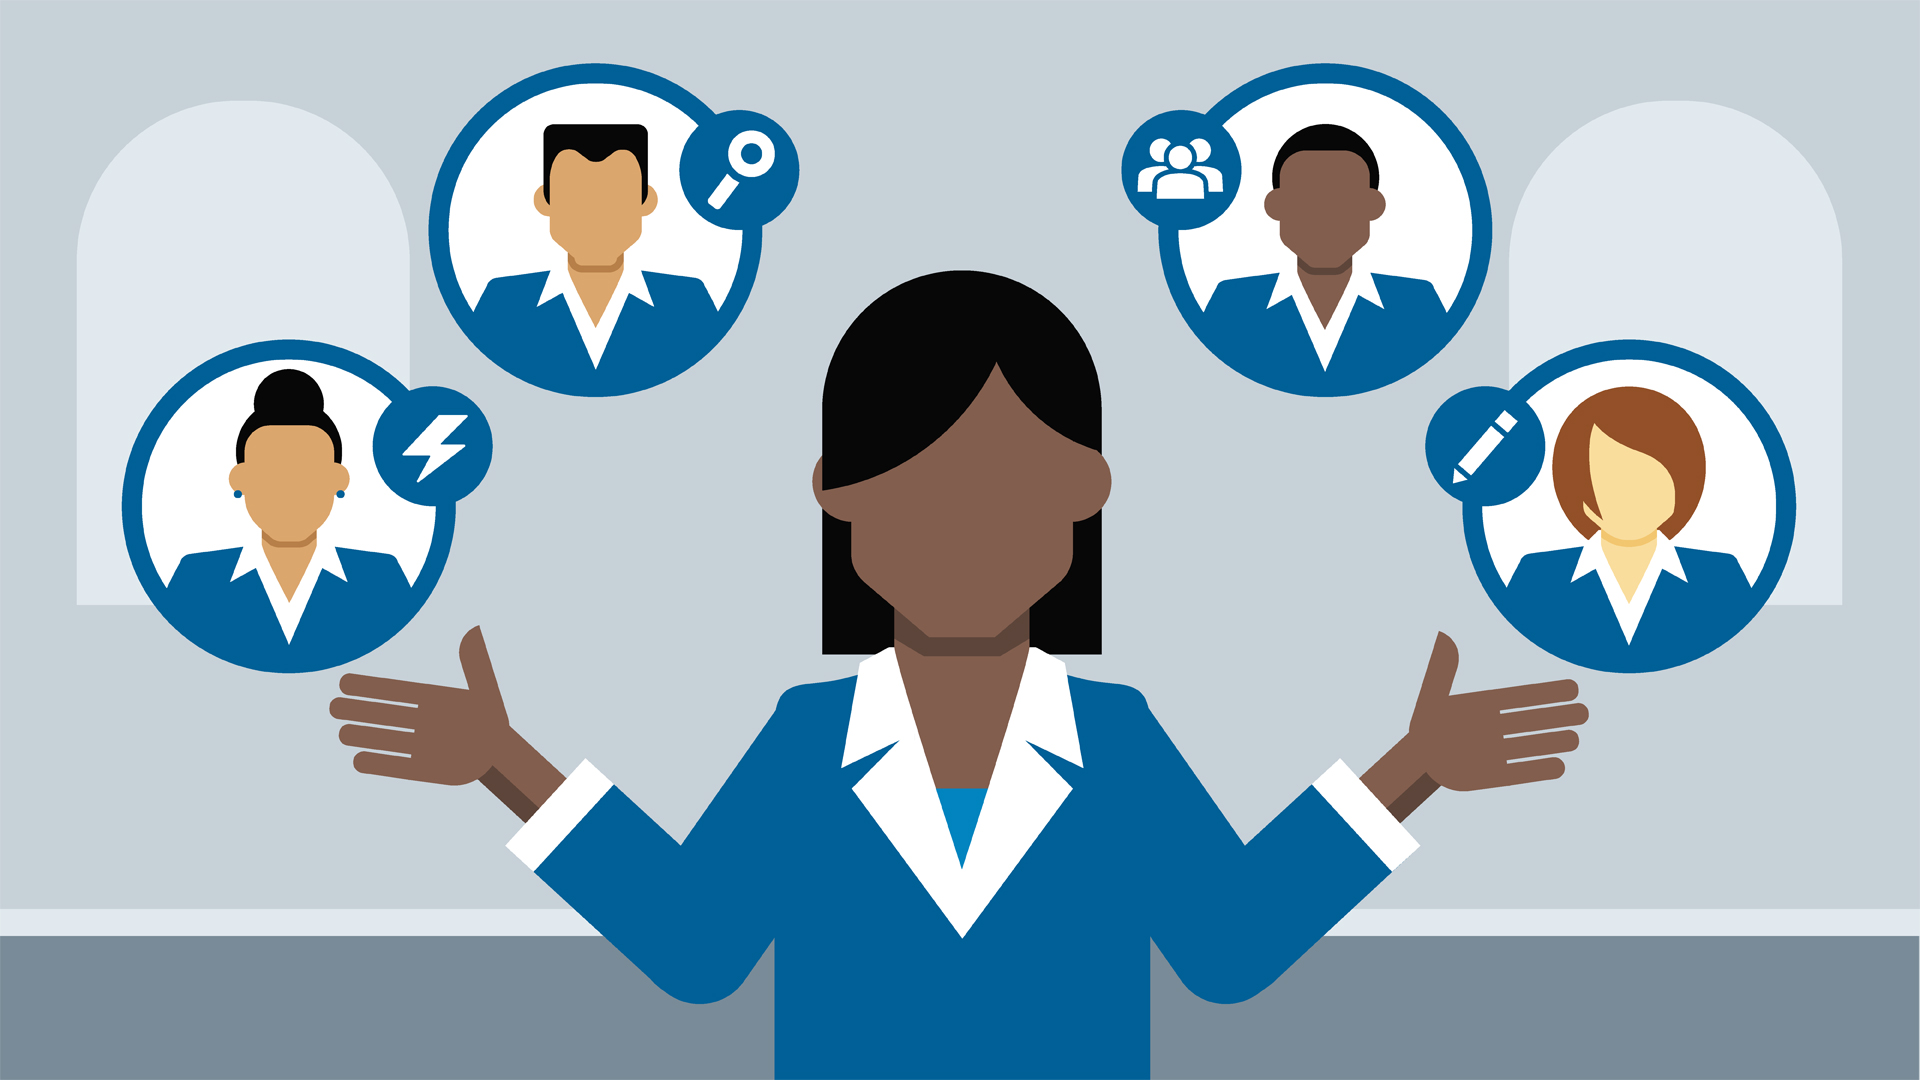 What are the things to avoid when managing your team?